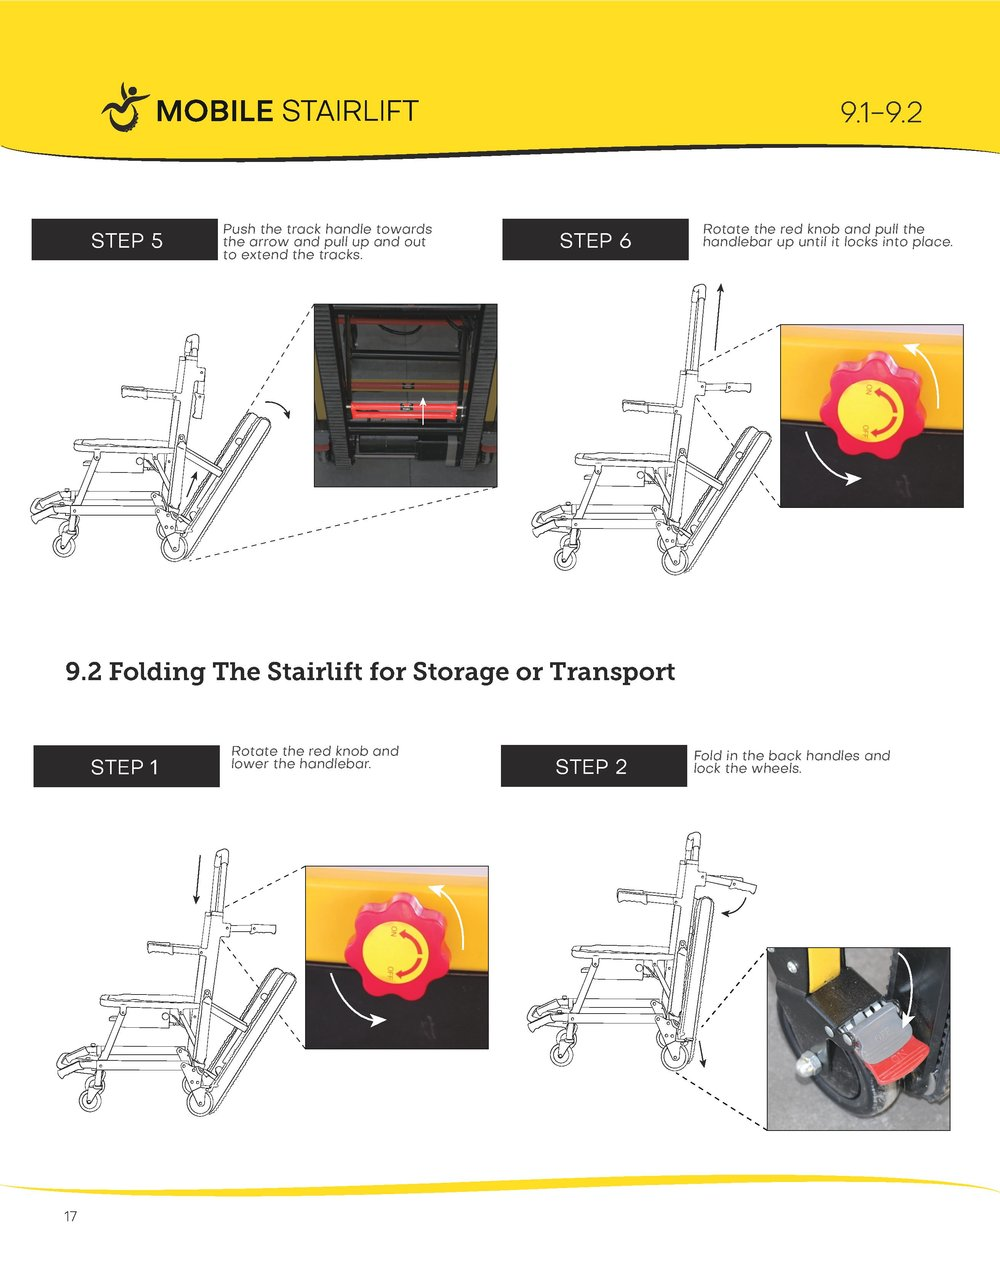 Mobile Stairlift Instruction Manual-18.jpg